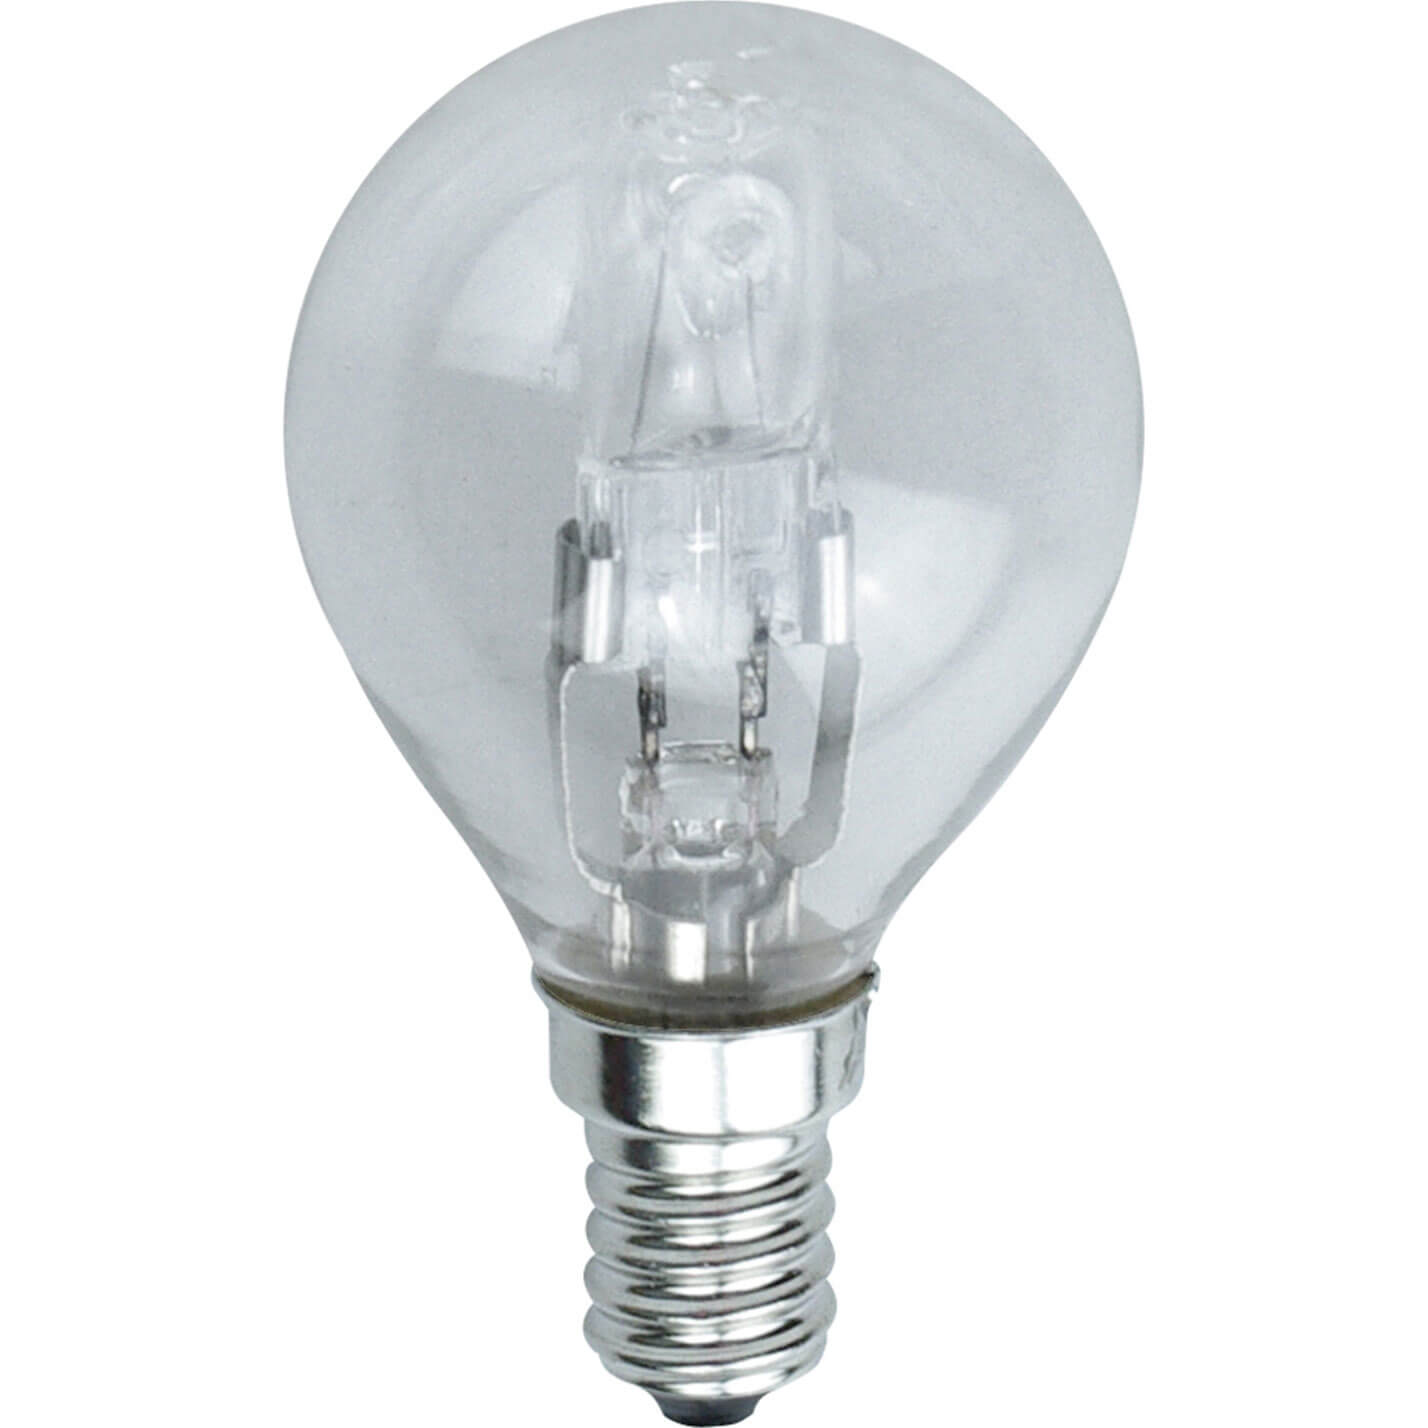 Image of Eveready Energy Save G45 Halogen Golf Bulb SES / E14 Small Edison Screw 42w